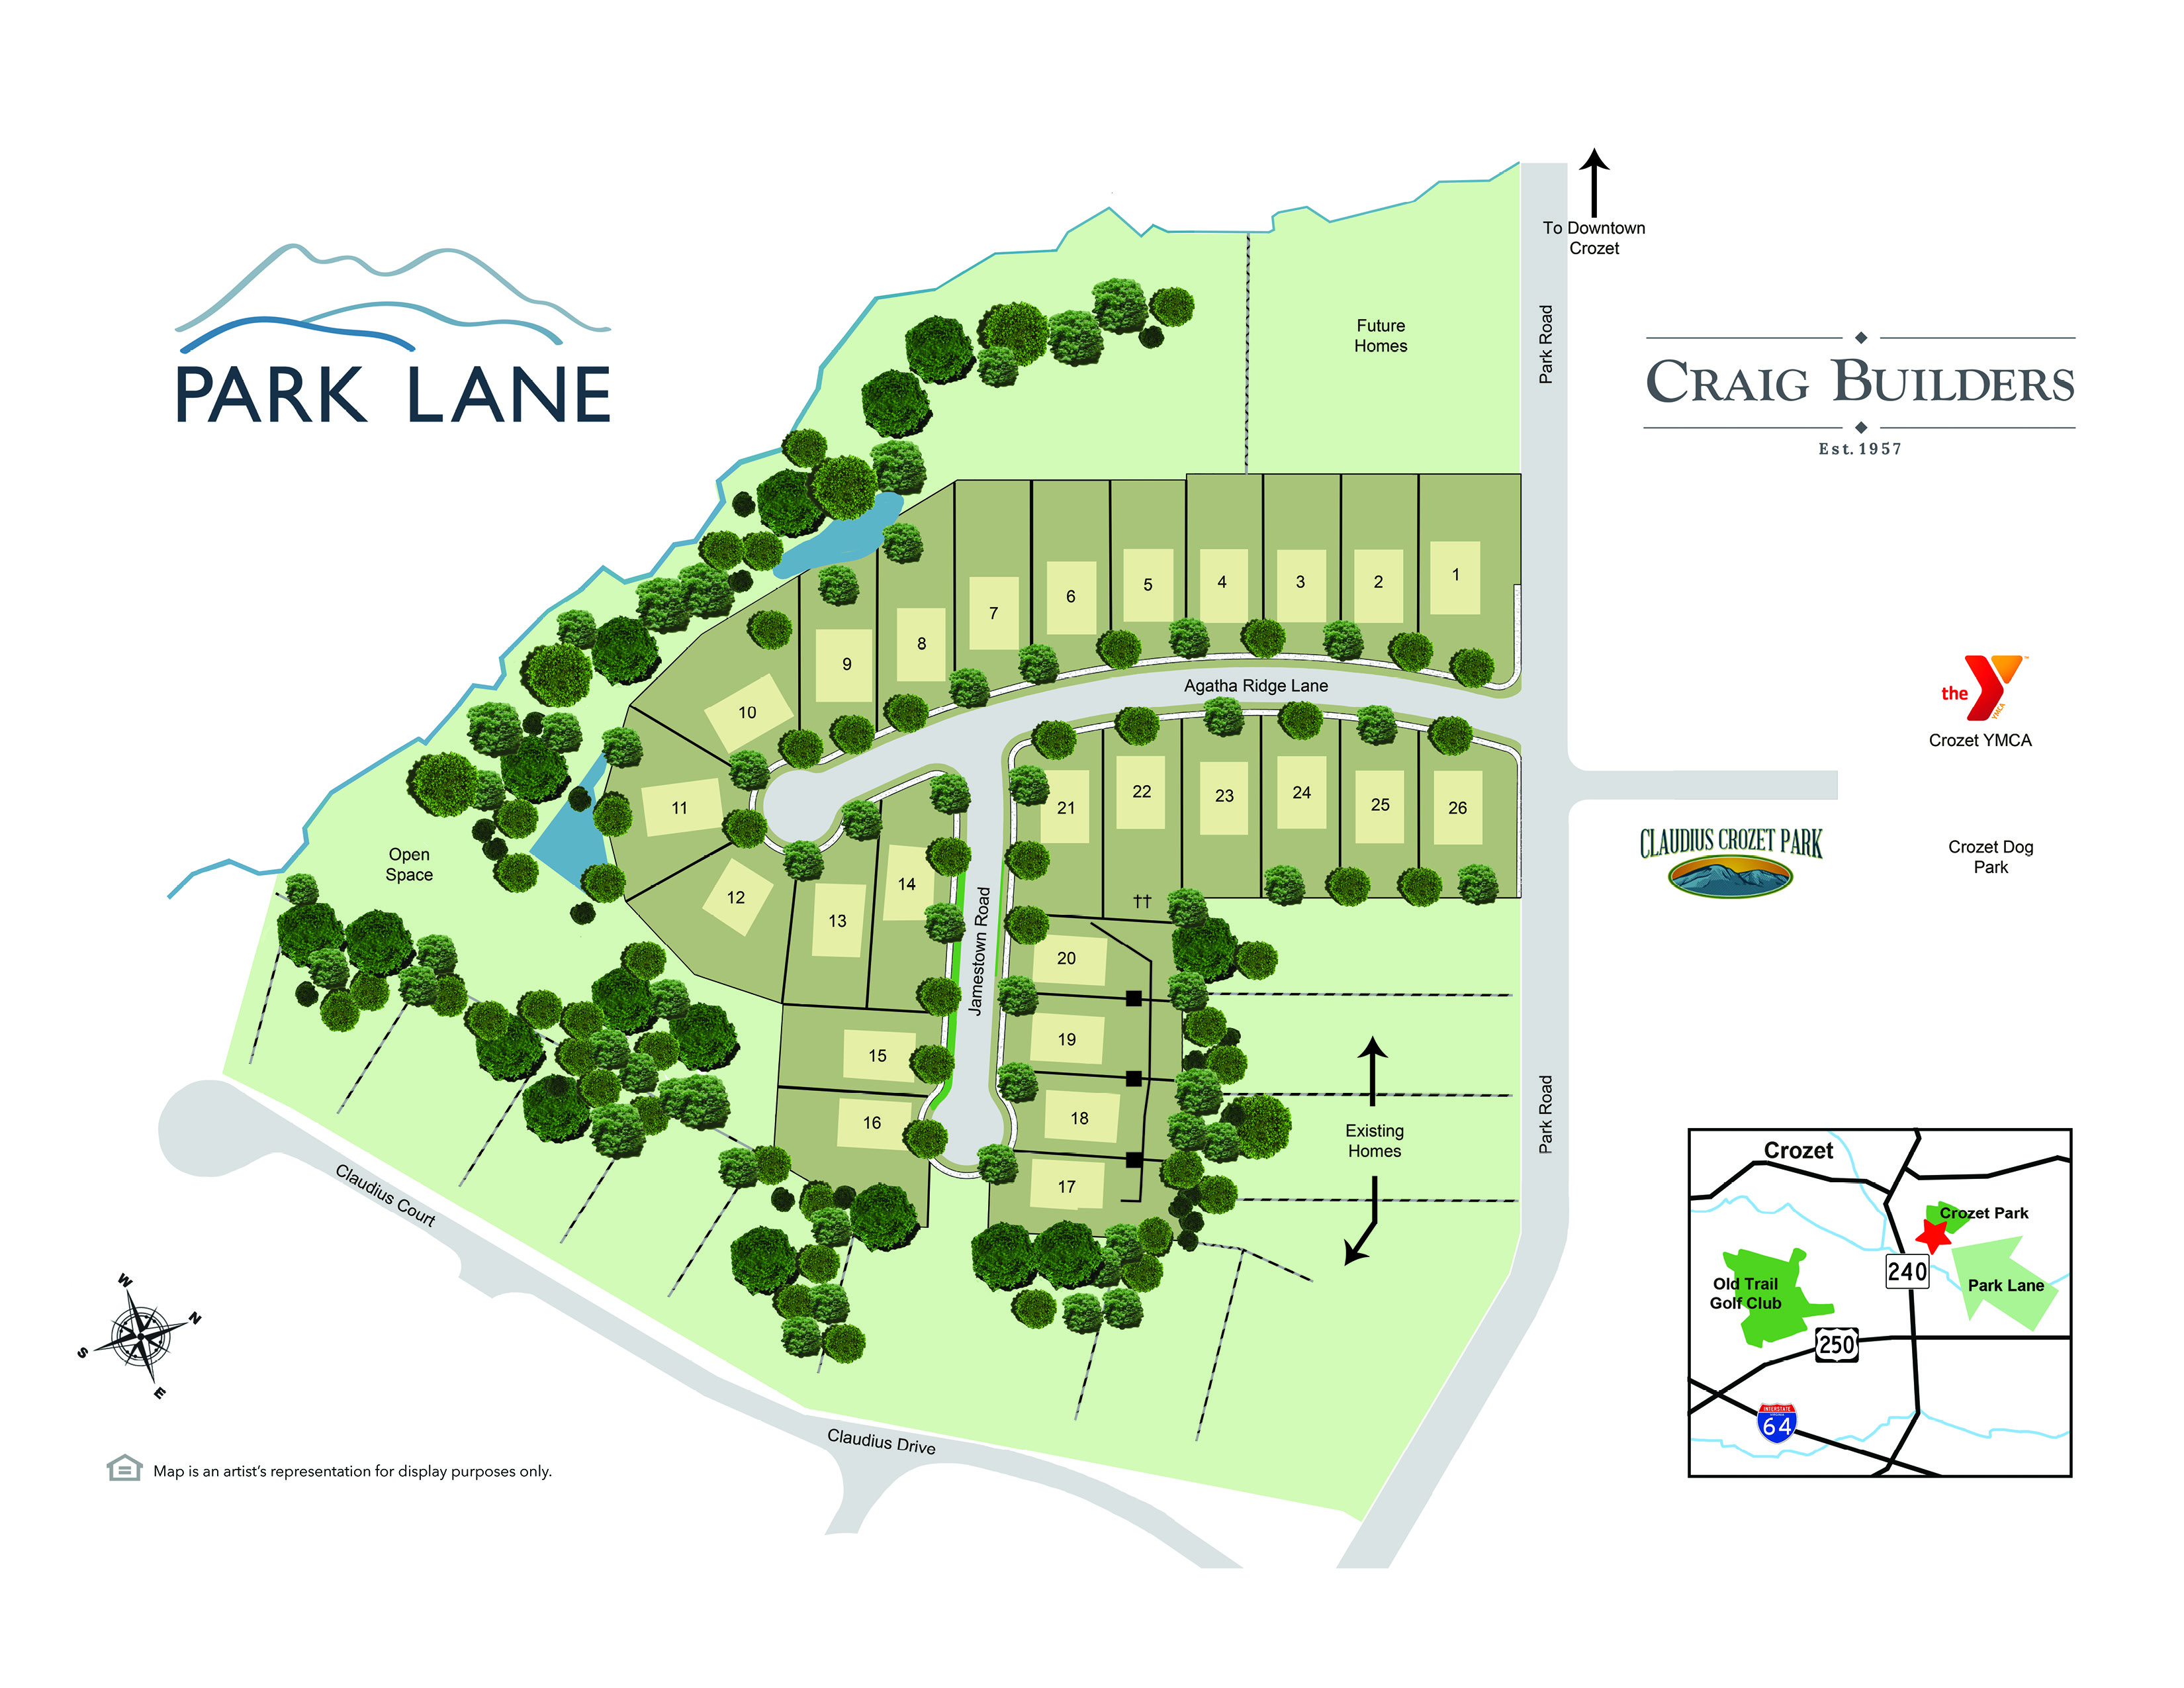 A map of the Park Lane Community to be built by Craig Builders in Crozet, VA